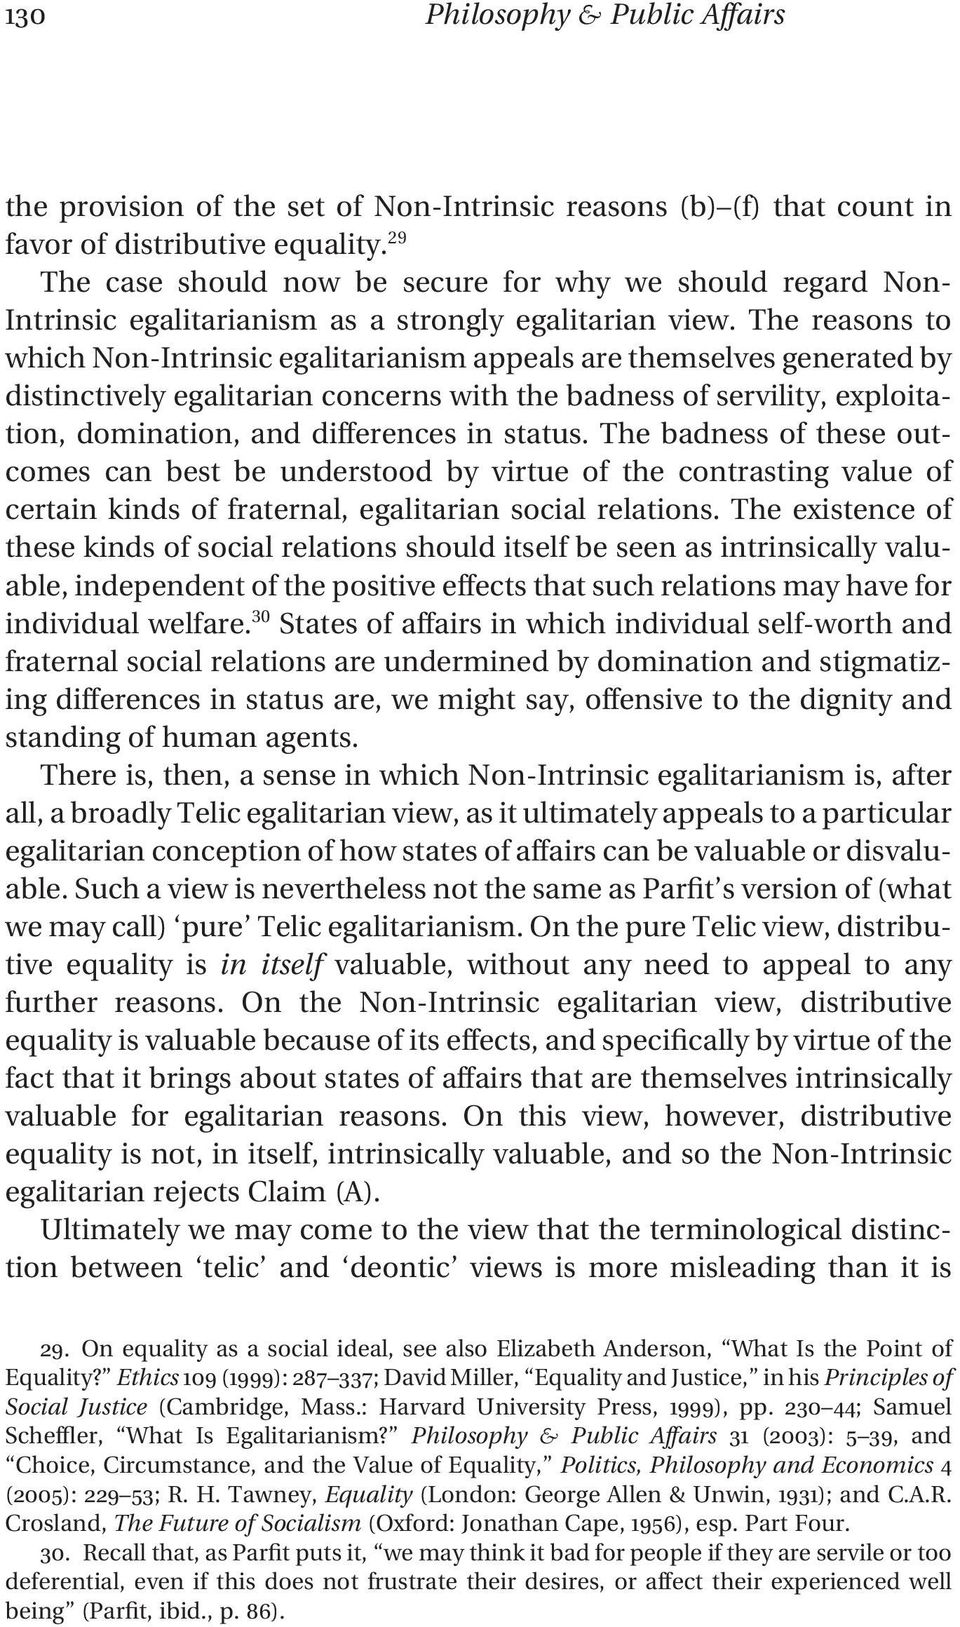 The reasons to which Non-Intrinsic egalitarianism appeals are themselves generated by distinctively egalitarian concerns with the badness of servility, exploitation, domination, and differences in